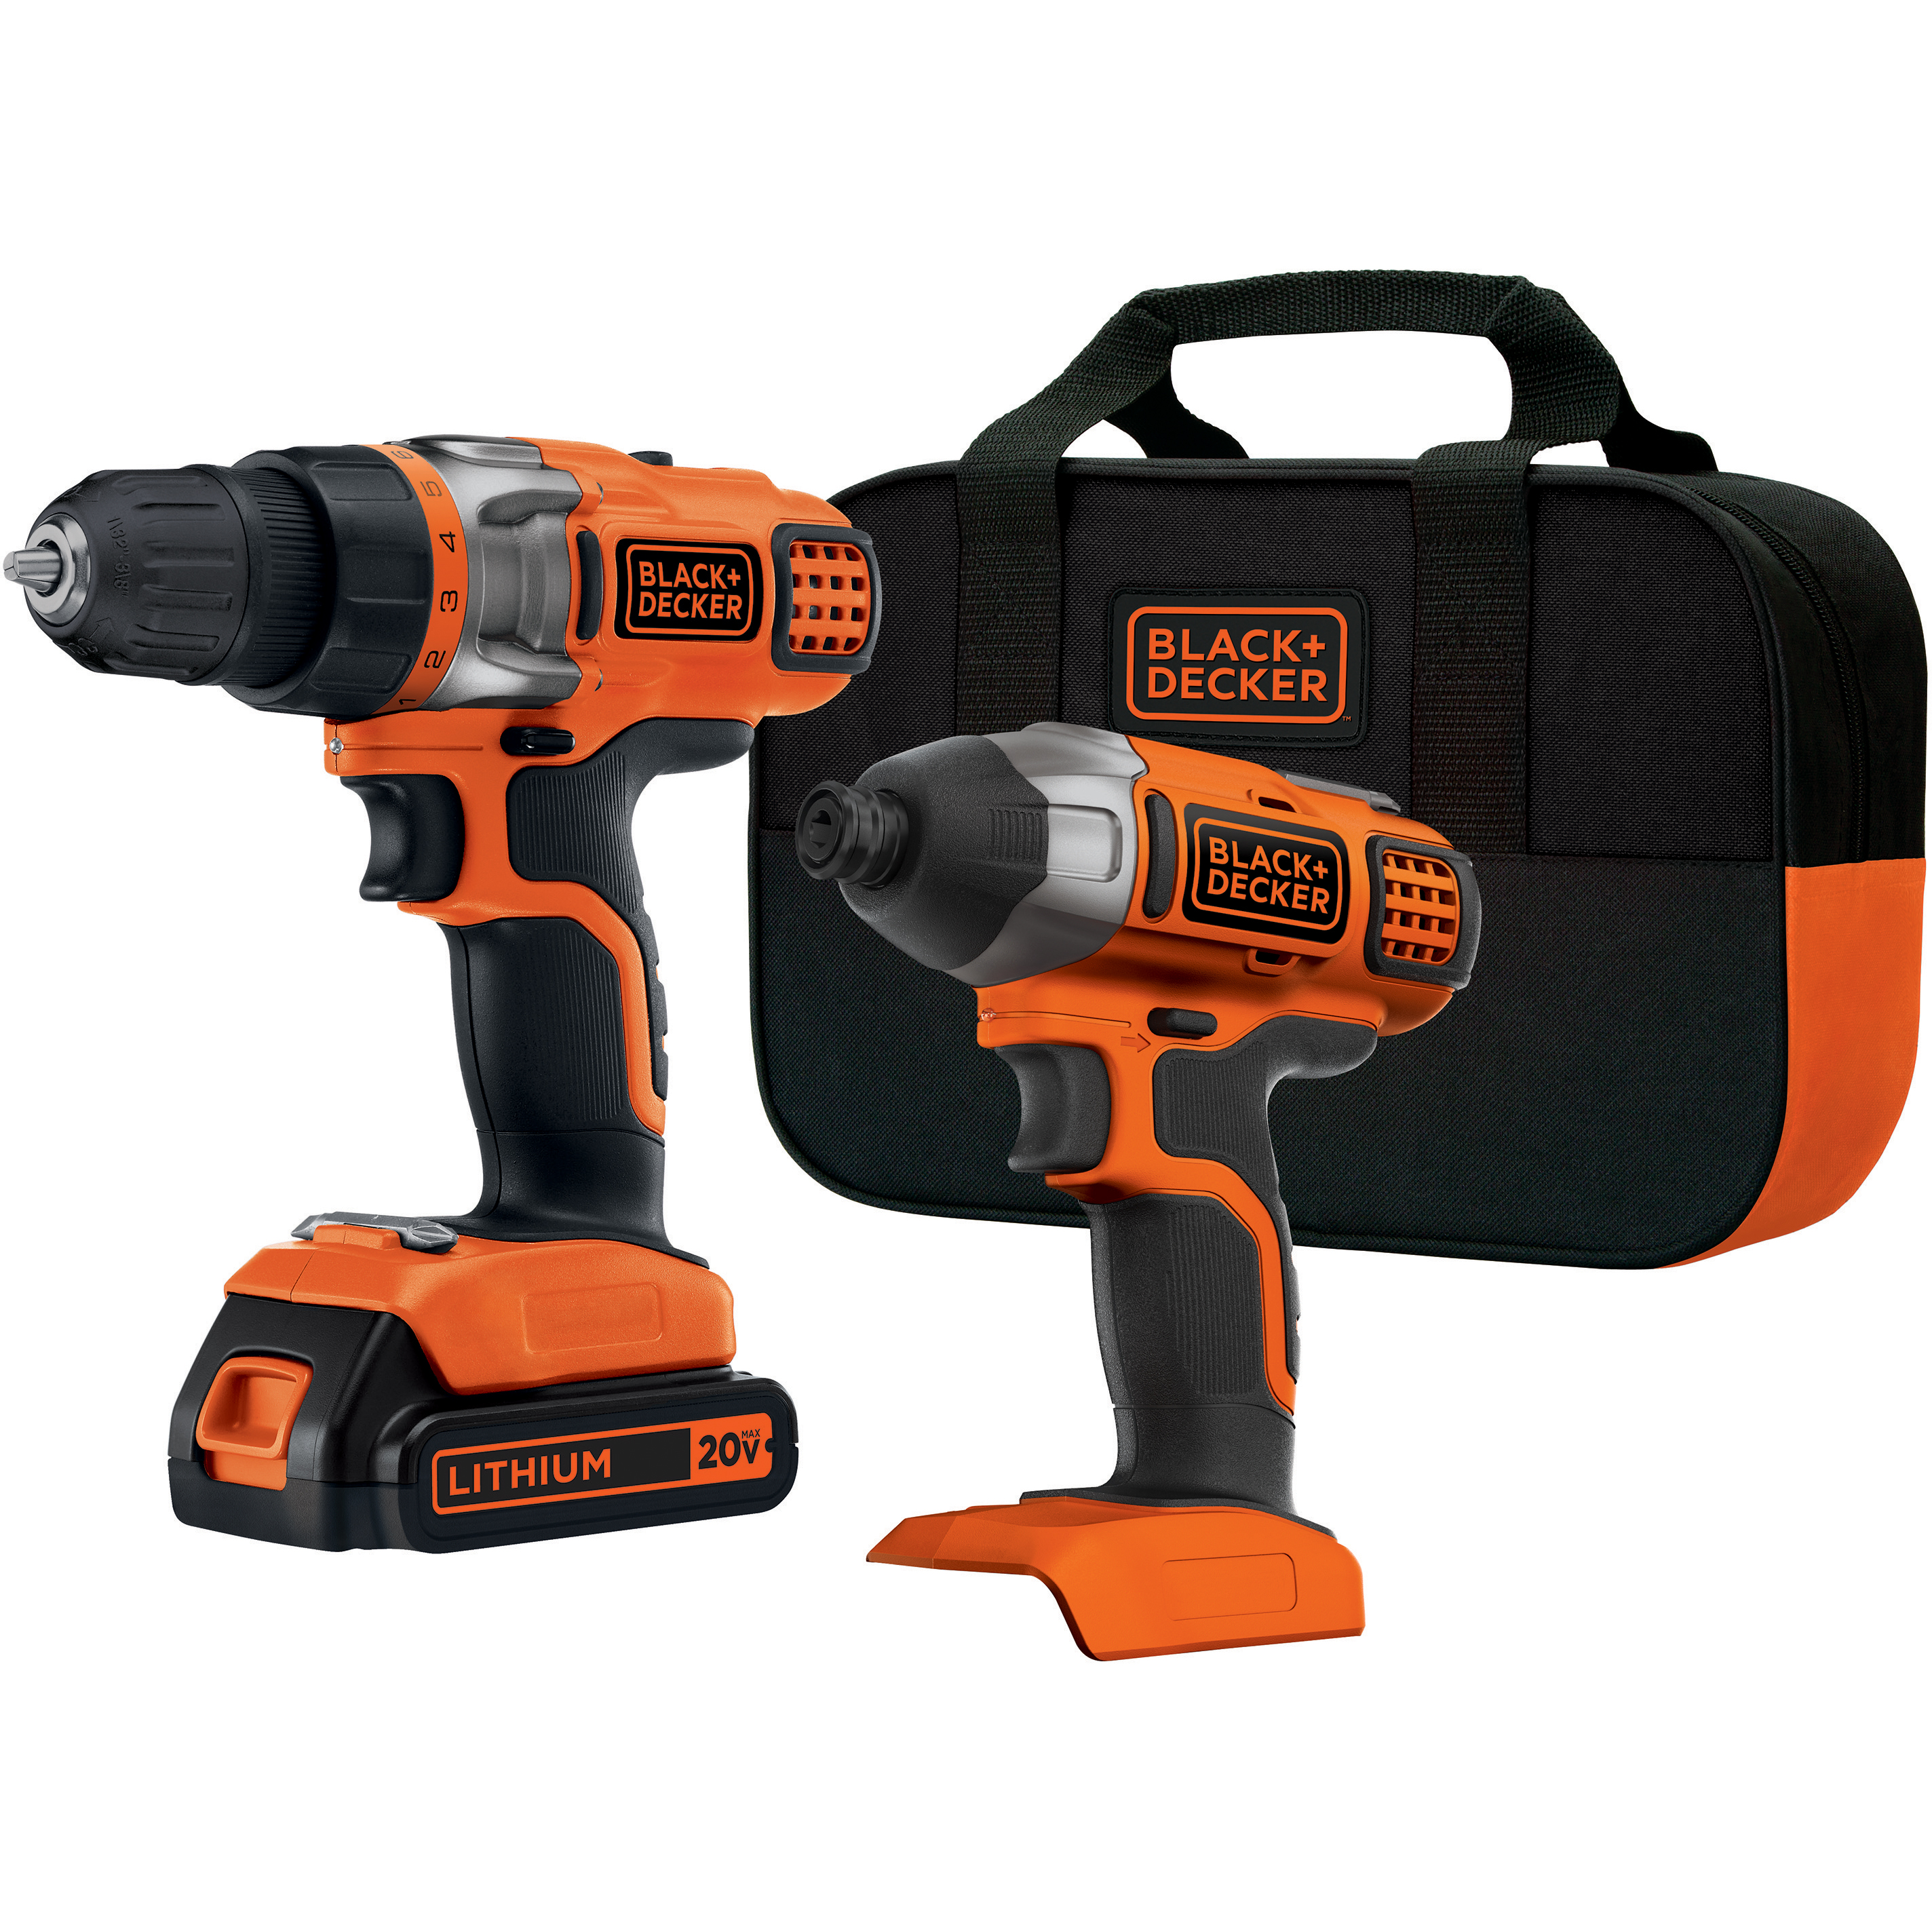 BLACK+DECKER BDCD220IA-1 20V Max Lithium-Ion Cordless Drill and Impact Driver with 1 Battery